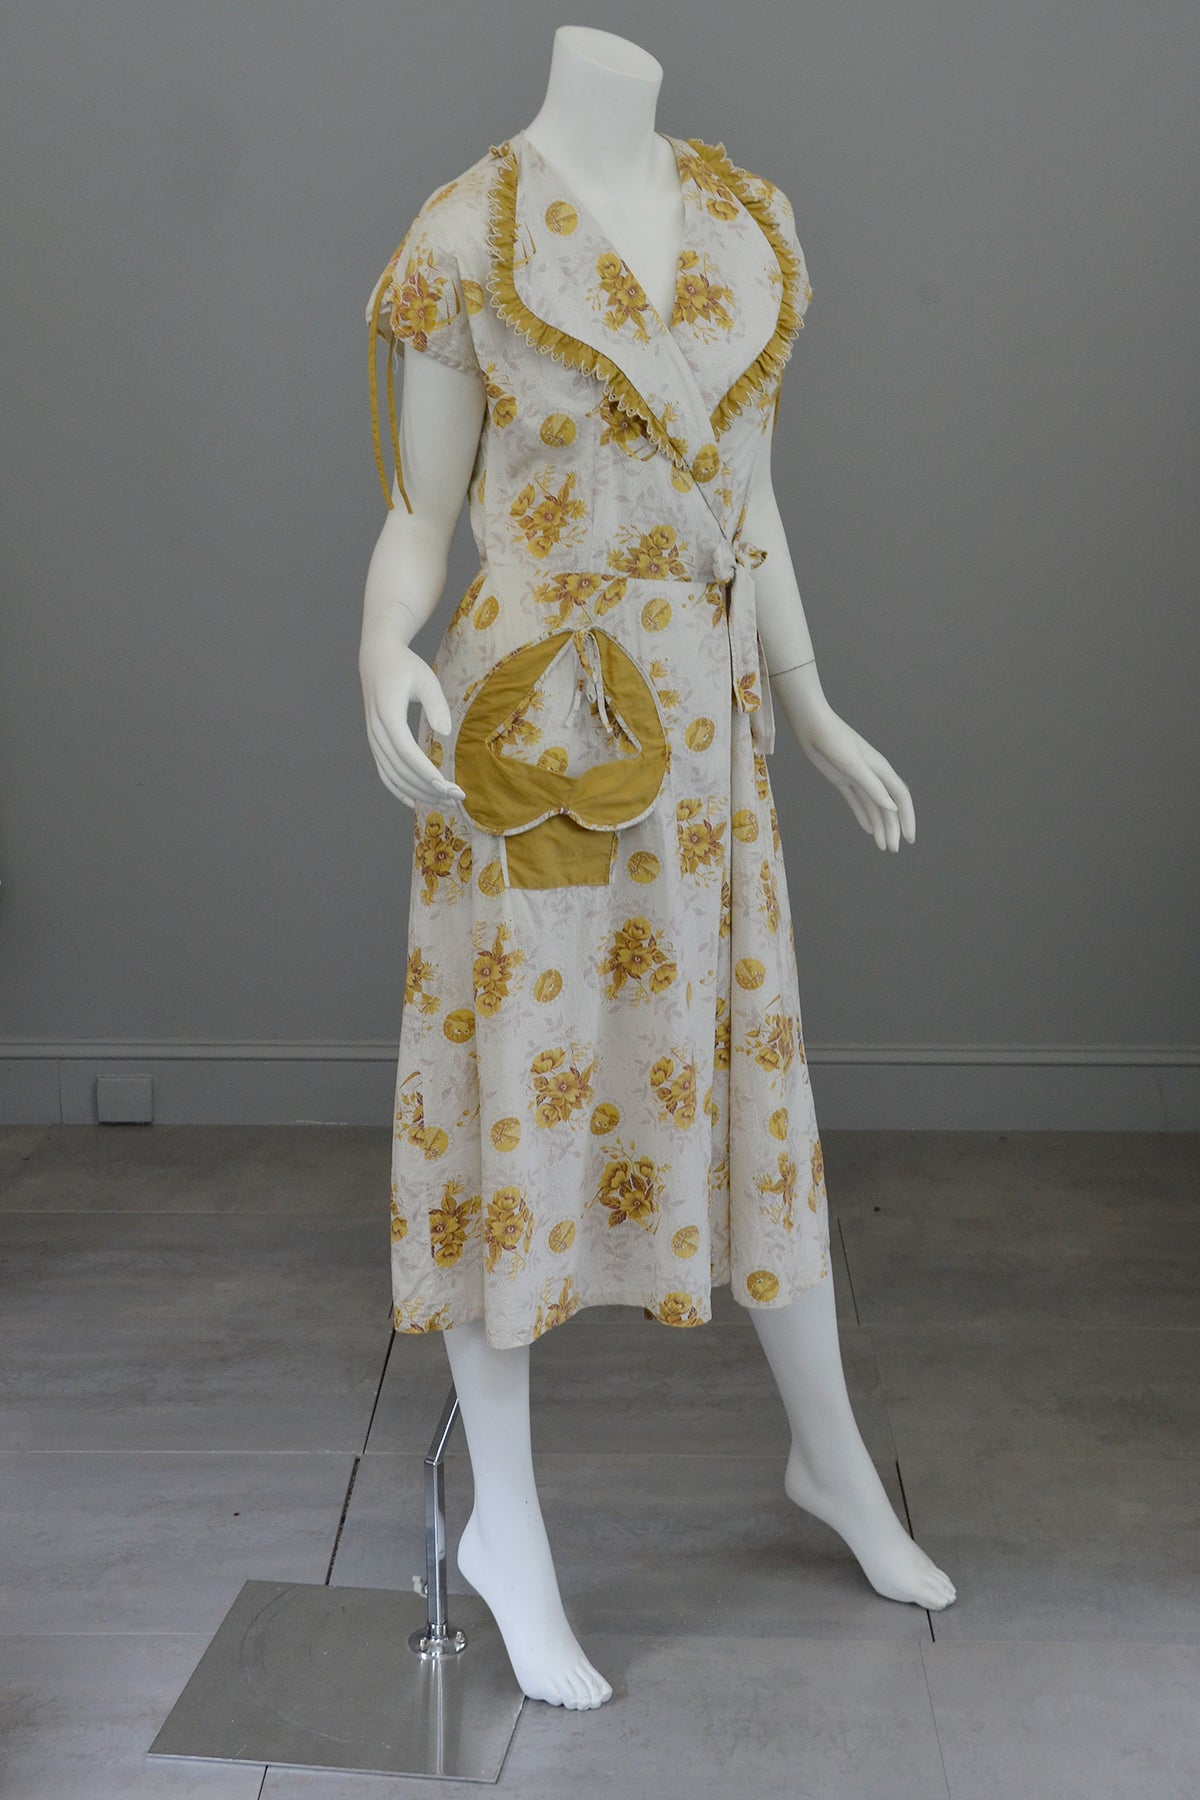 1930s 40s Novelty Print Cotton Wrap Dress, Housecoat, Robe